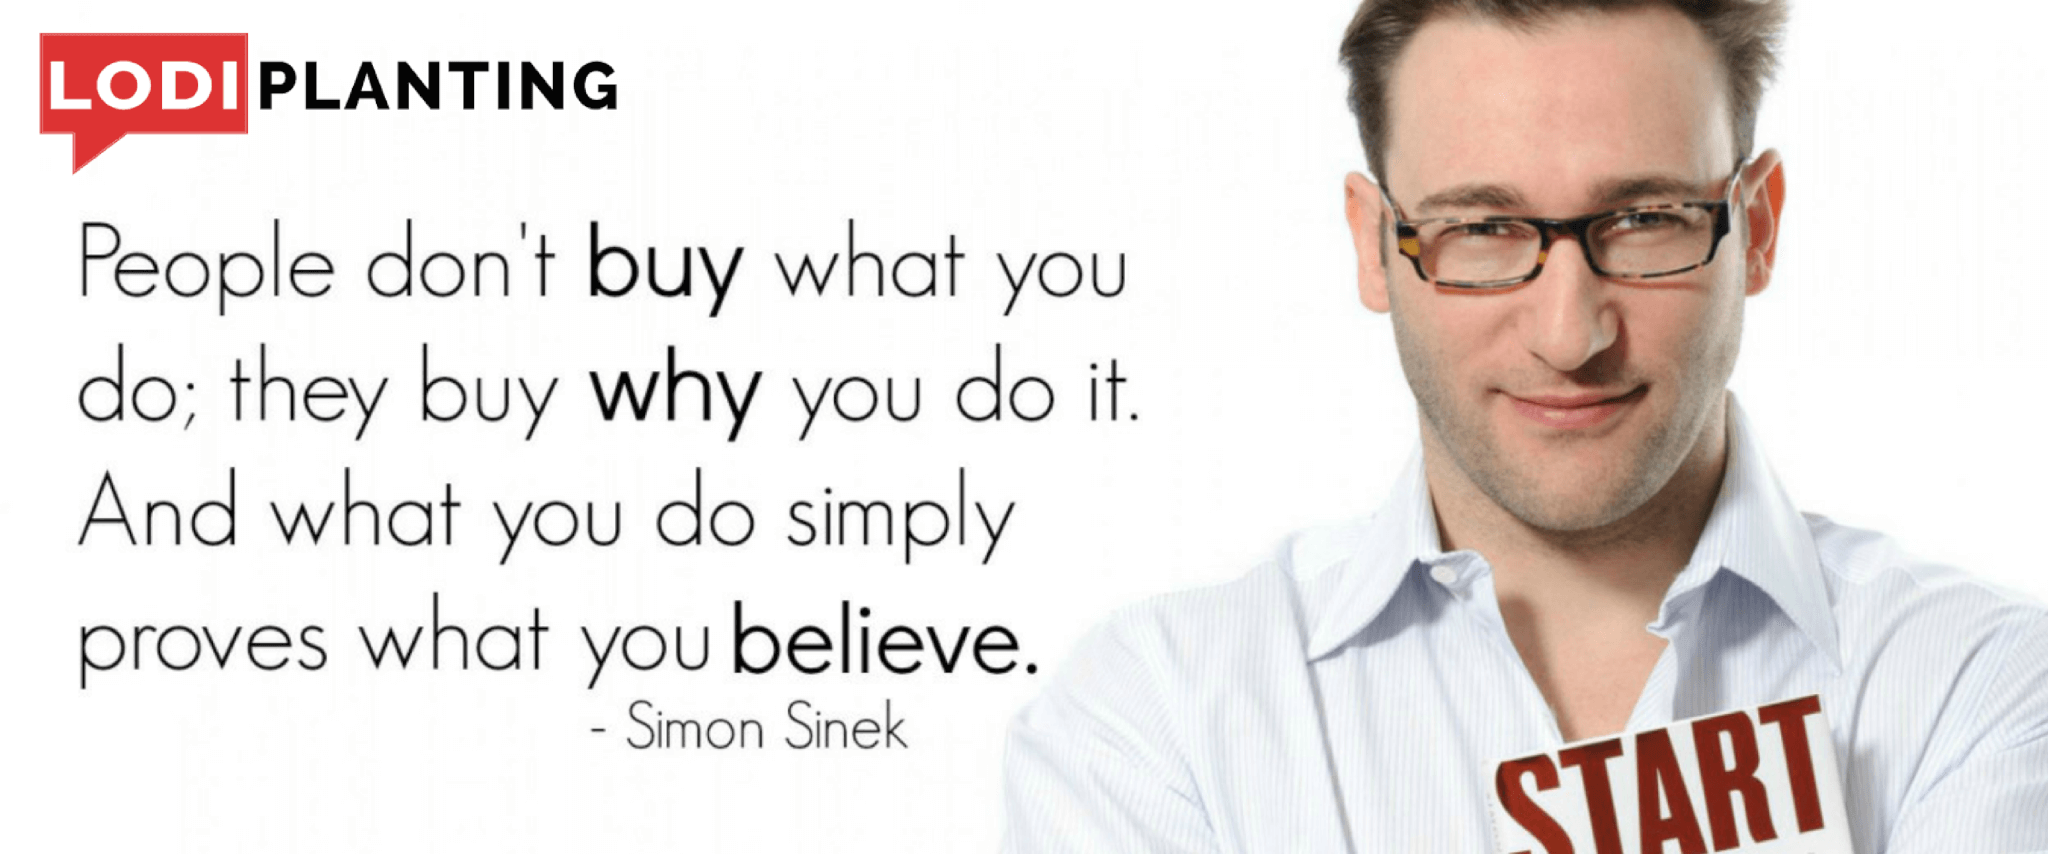 Simon Sinek- start with why (Lodi Planting.com)